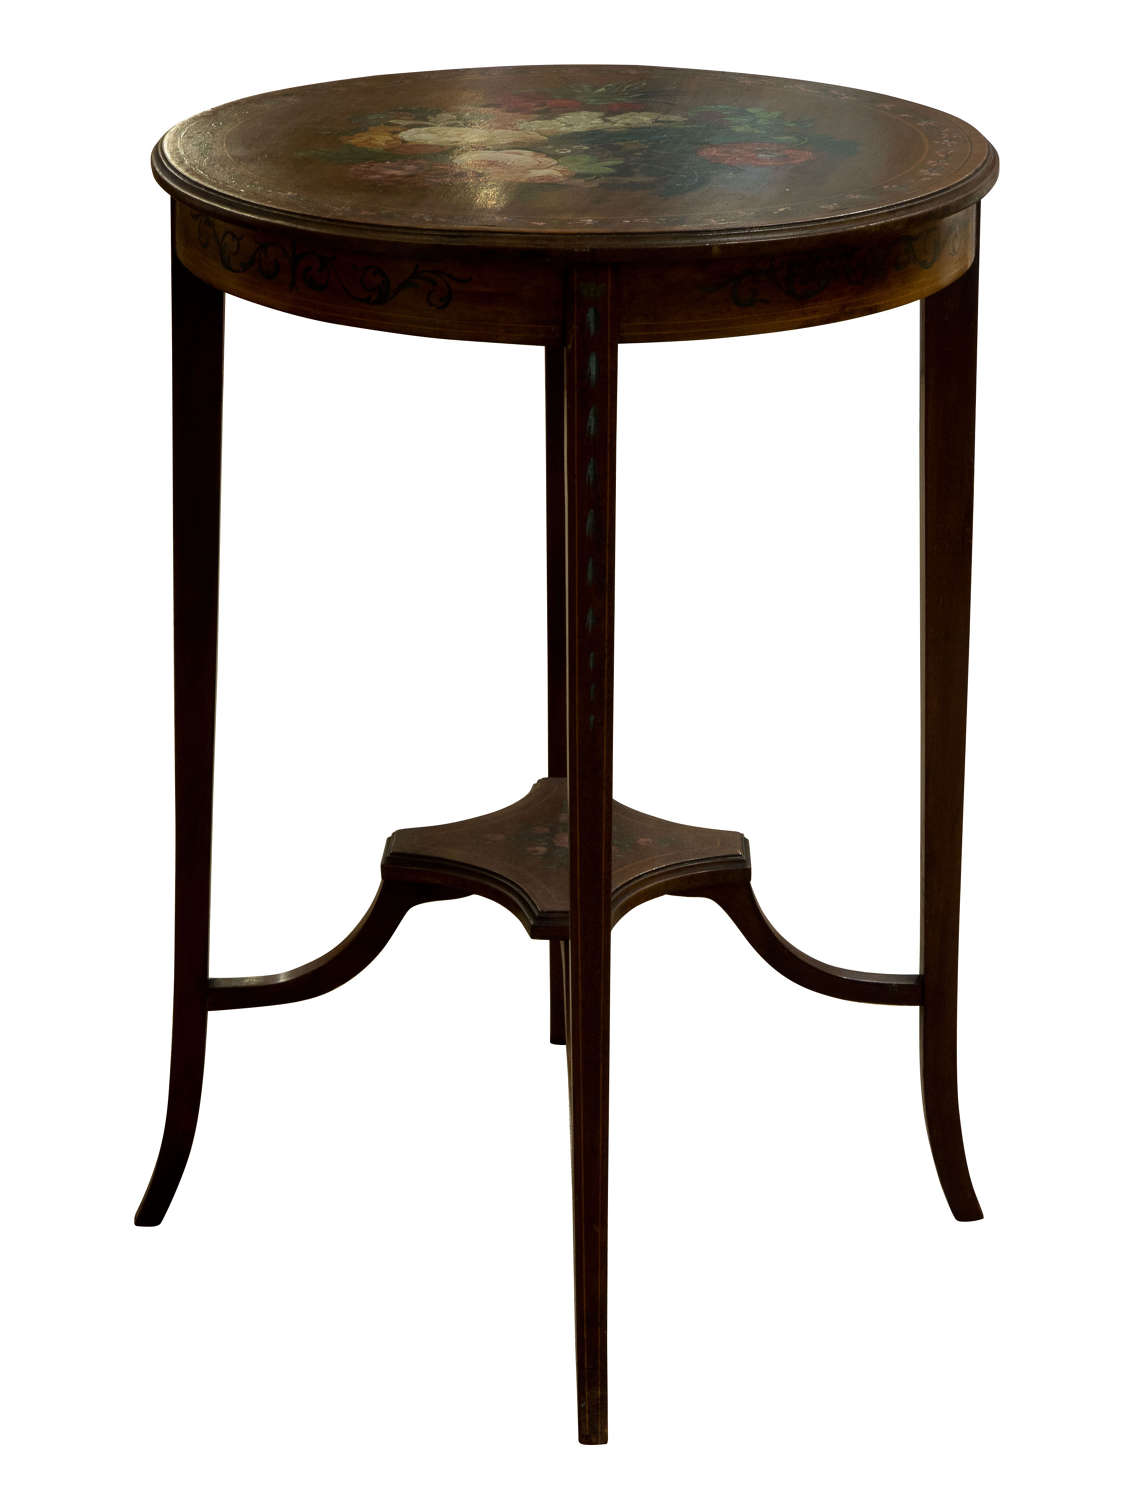 Edwardian mahogany and painted side table